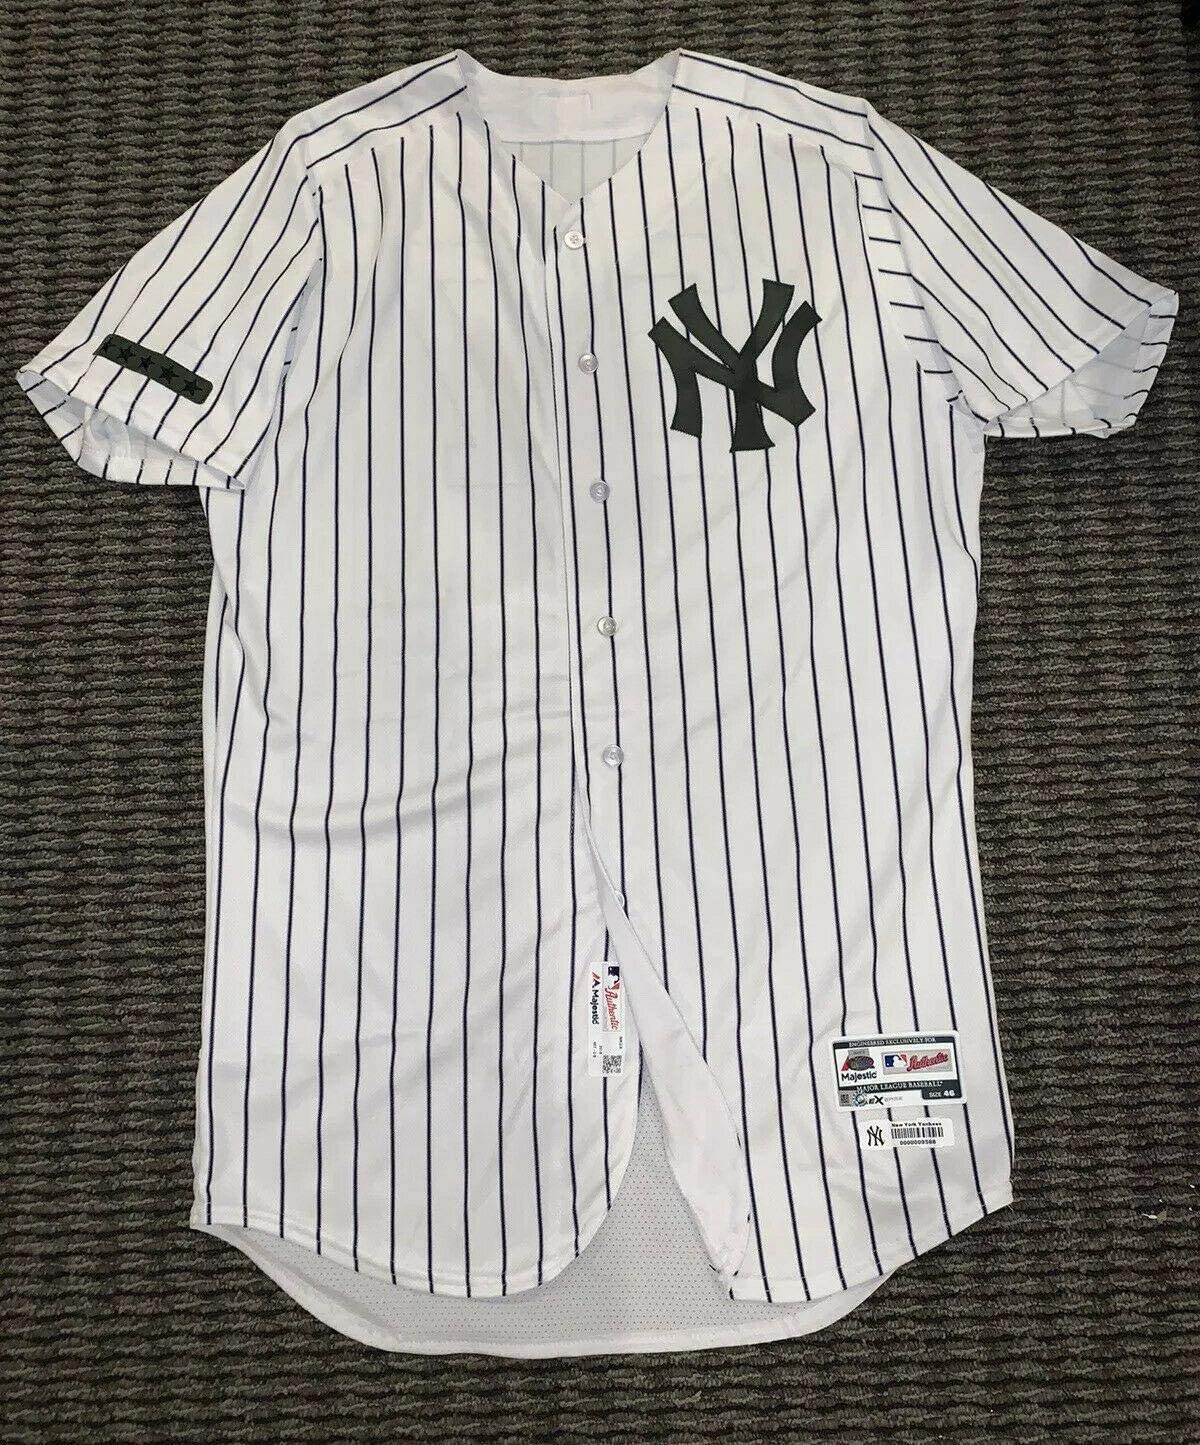 Giancarlo Stanton New York Yankees Game Used Worn Jersey 2018 Memorial Day MLB - MLB Game Used Jerseys